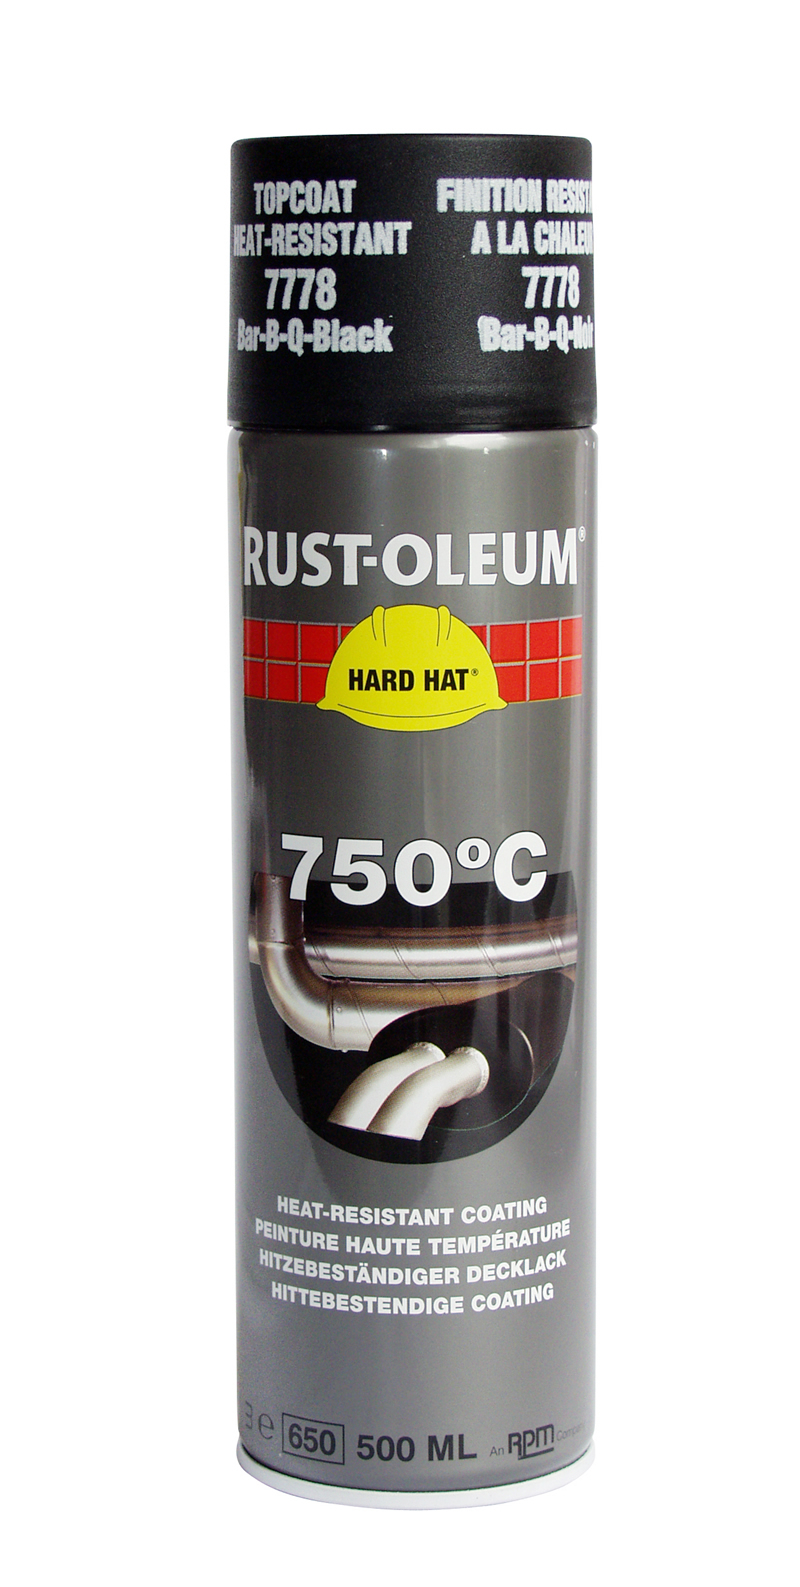 Rust-Oleum 7778 Bar-B-Q Black Spray Paint